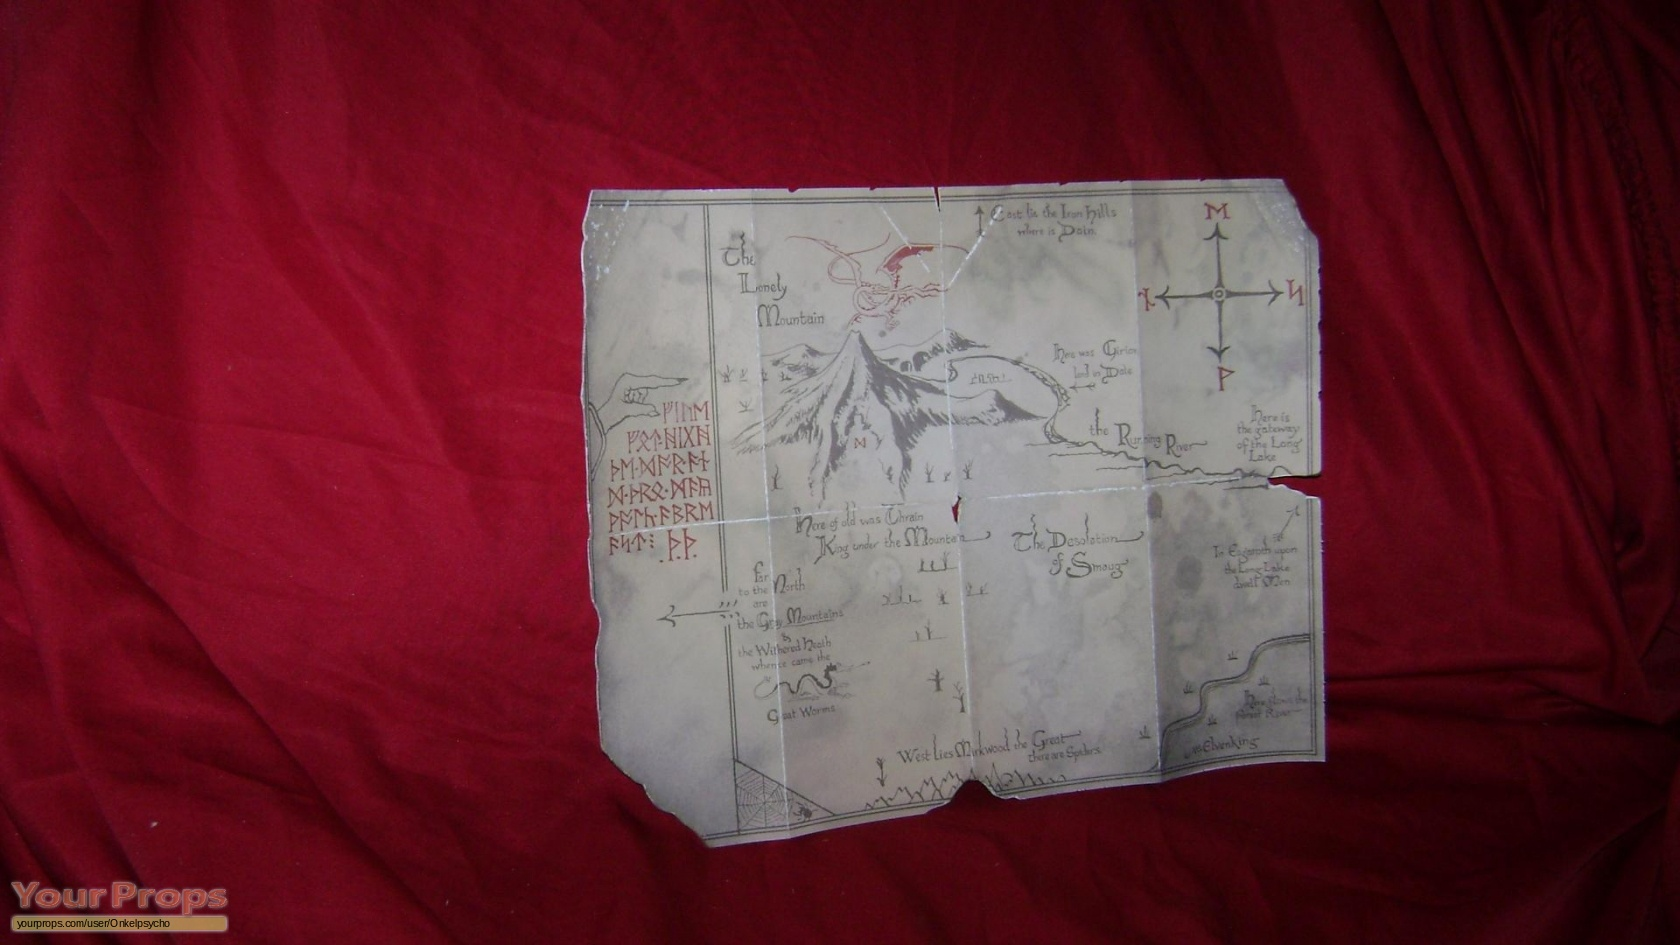 Lord of the Rings Trilogy Map to Erebor replica movie prop